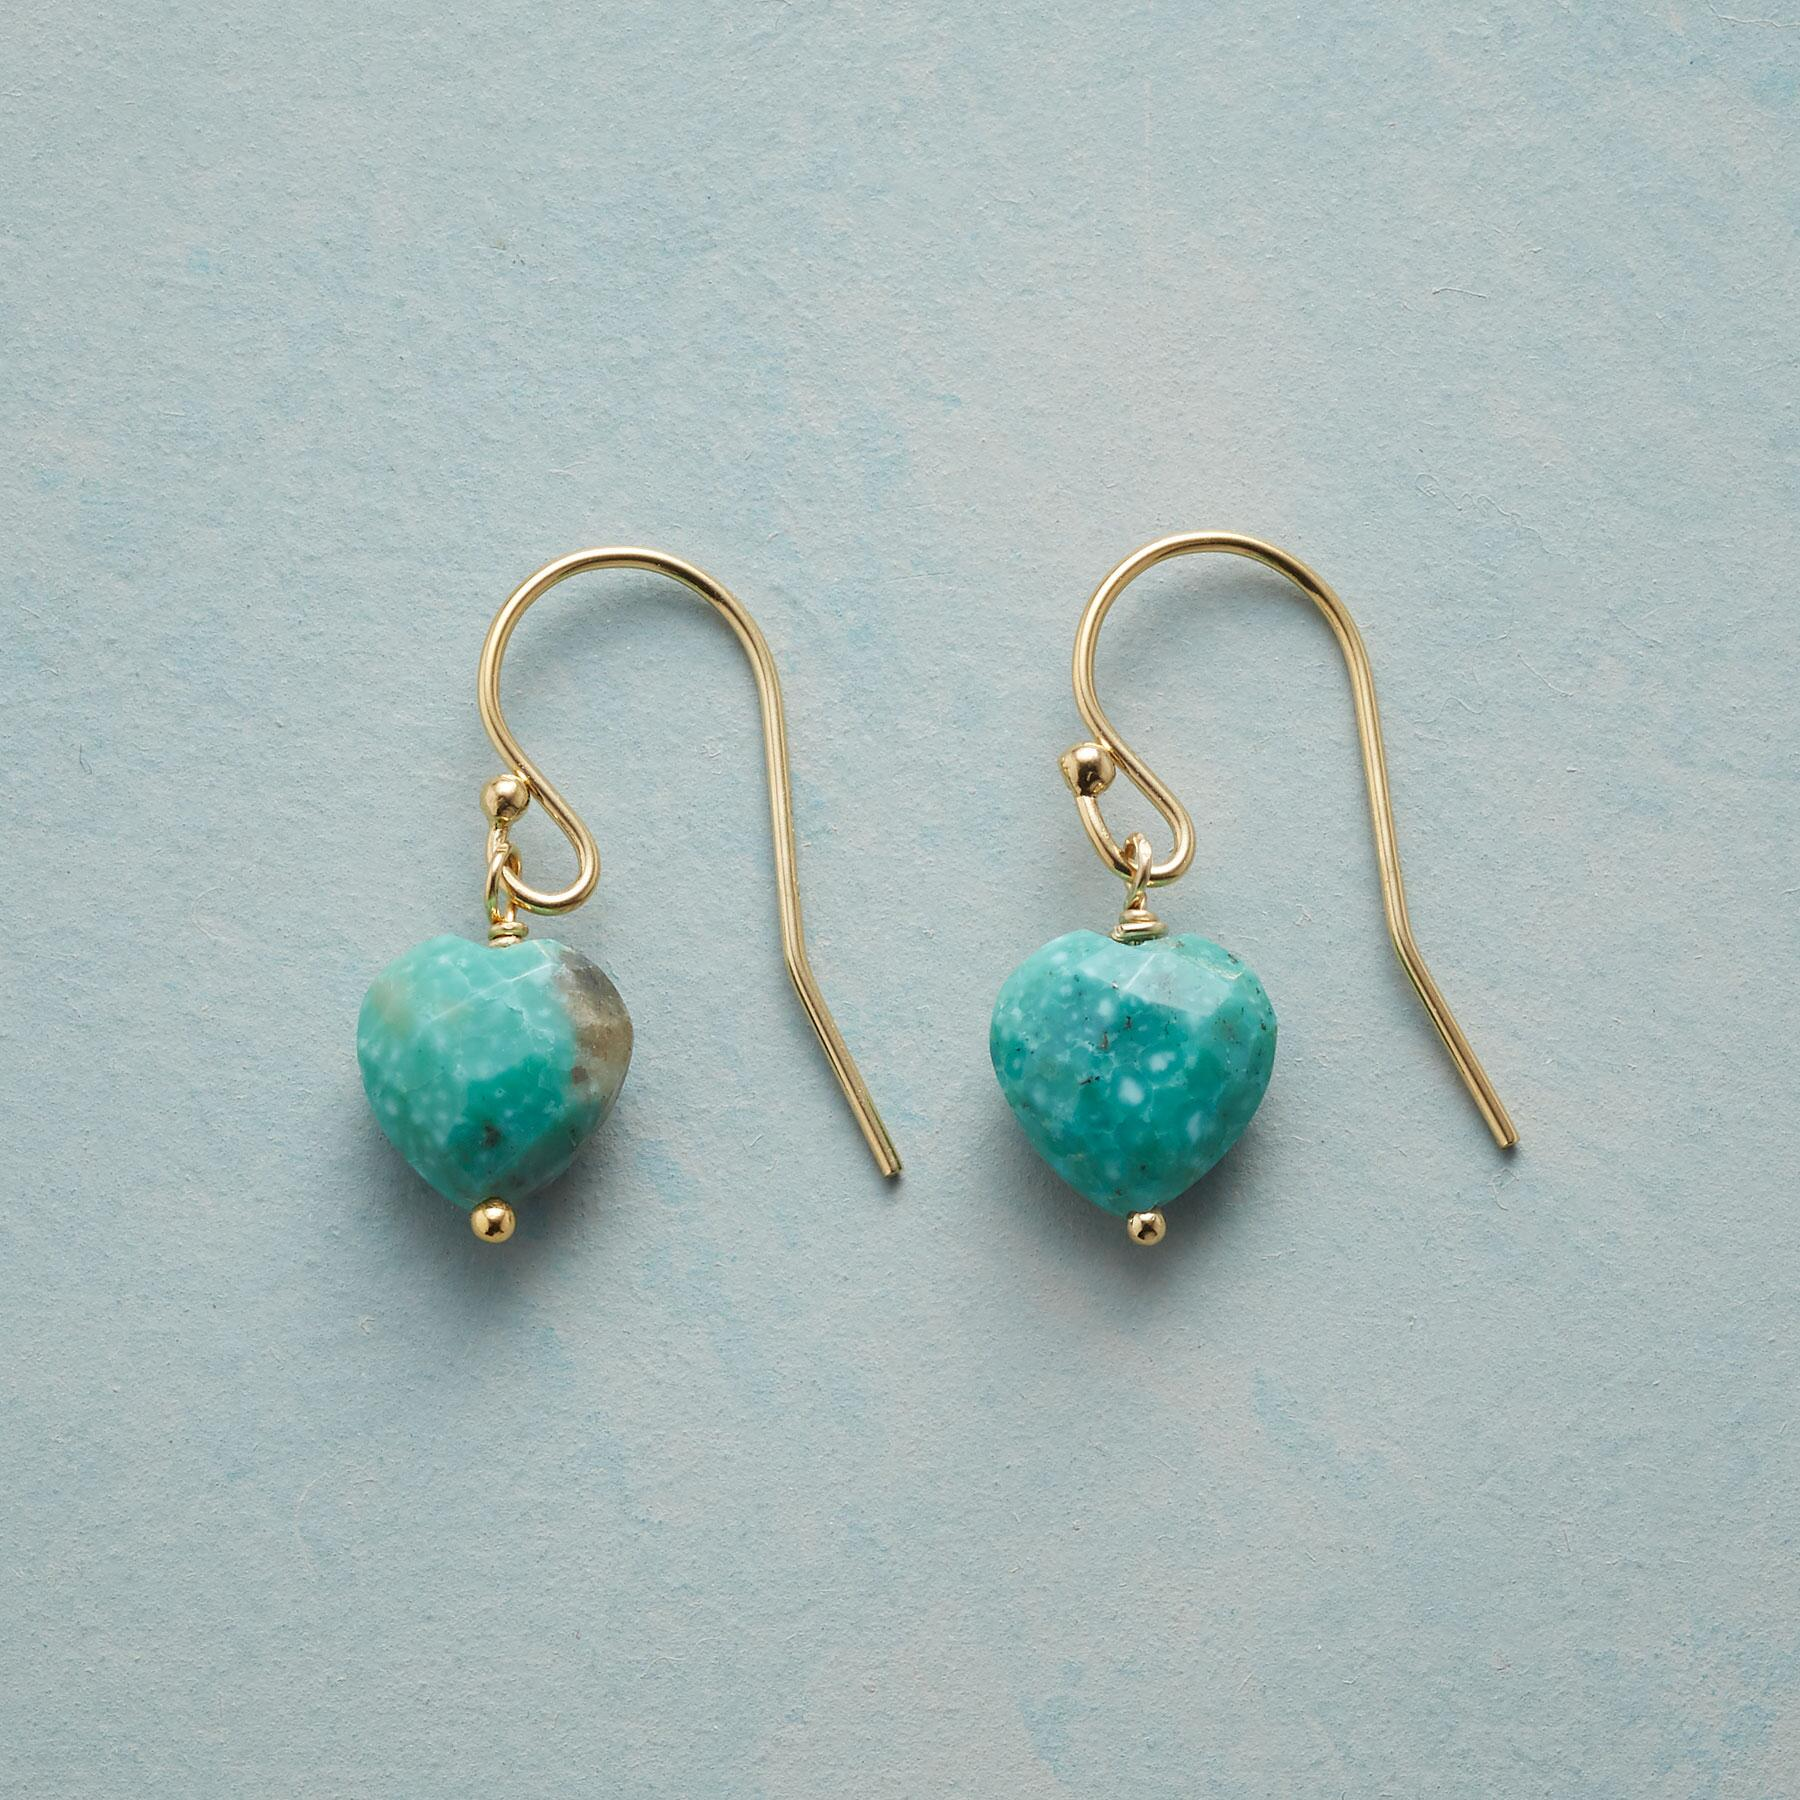 FAITHFUL HEART BIRTHSTONE EARRINGS: View 1